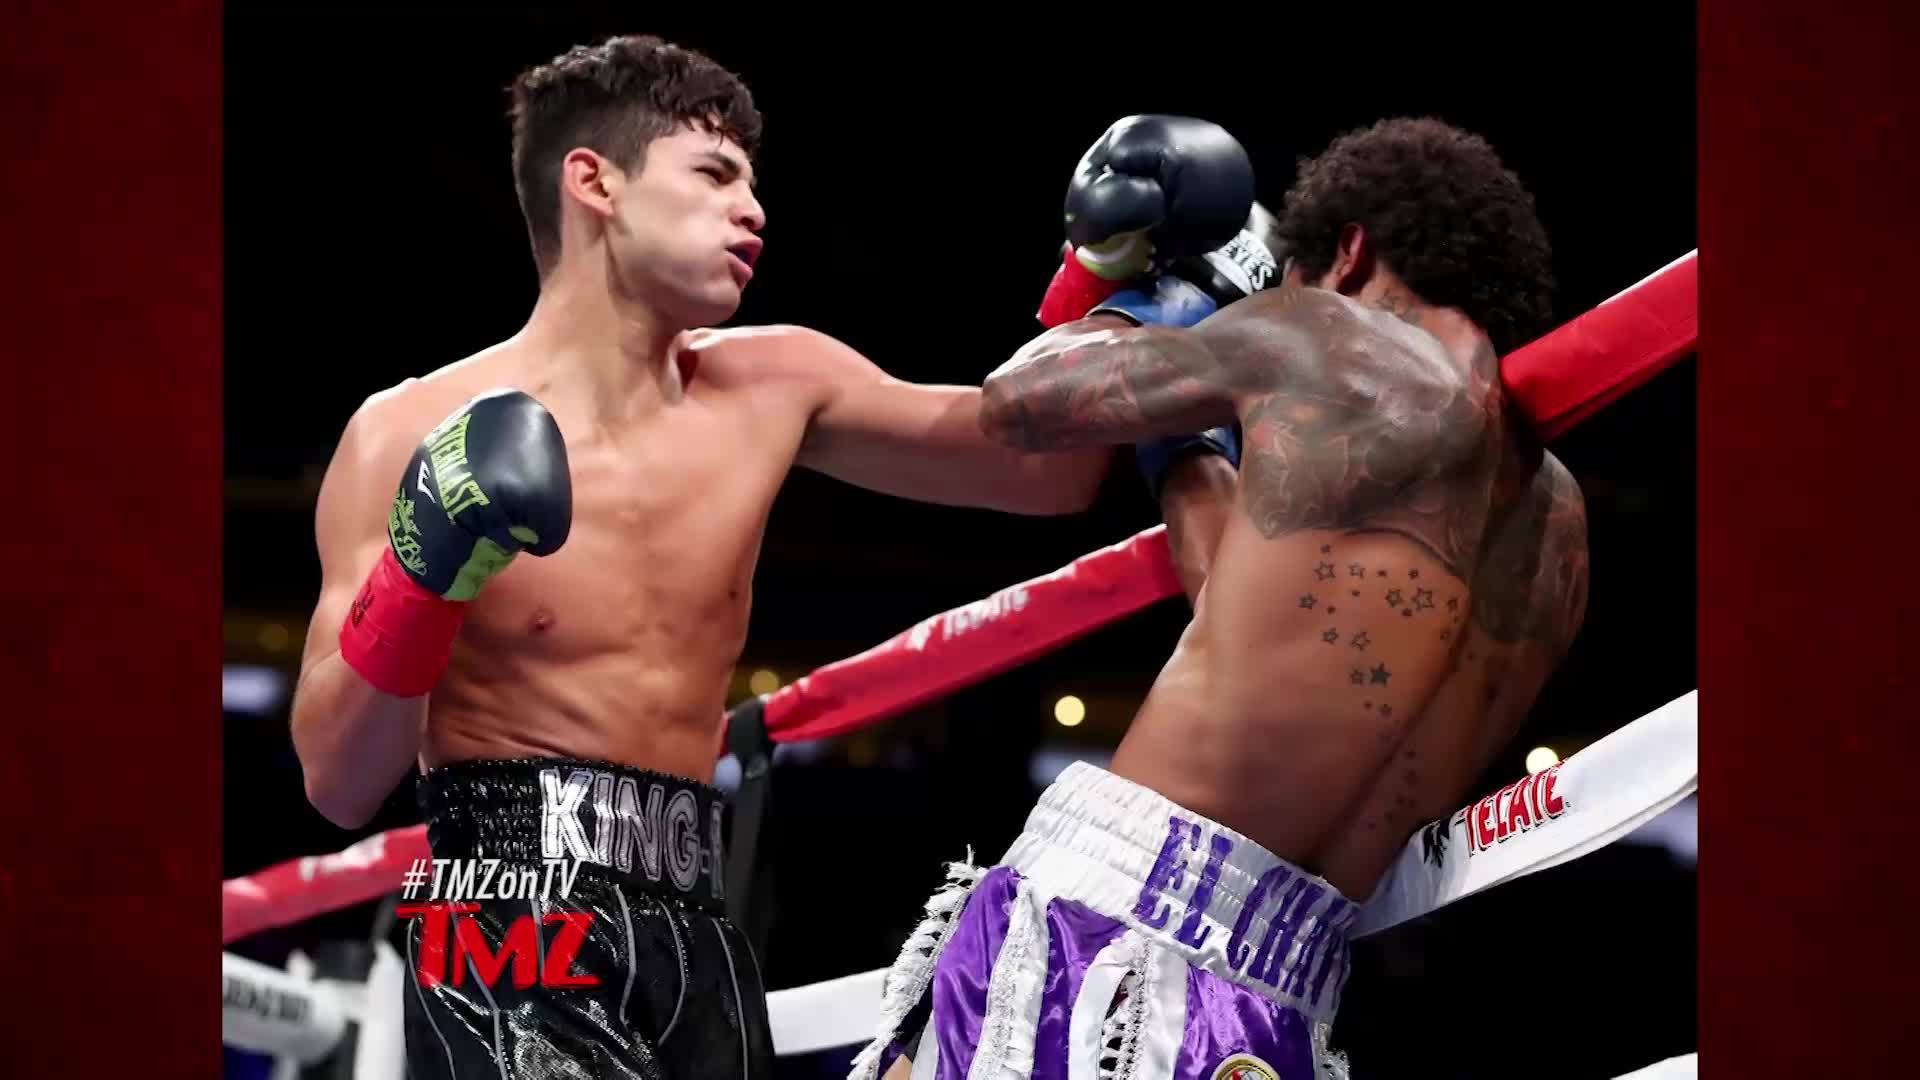 Tmz On Demand Ryan Garcia Gives A S O To Selena Gomez